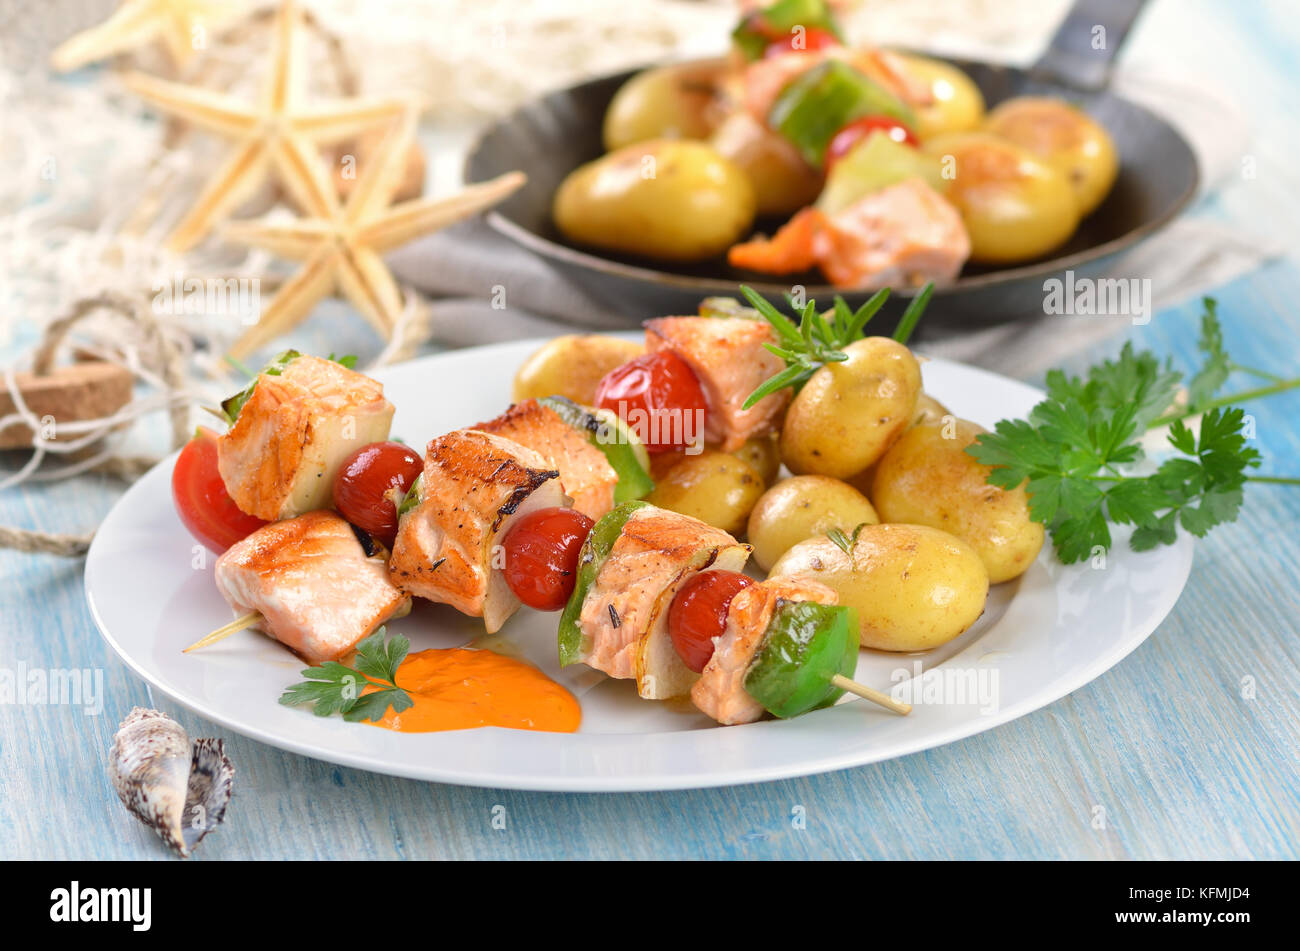 Fried salmon skewers with vegetables and small fried potatoes with rosemary, a pan in the background - Stock Image